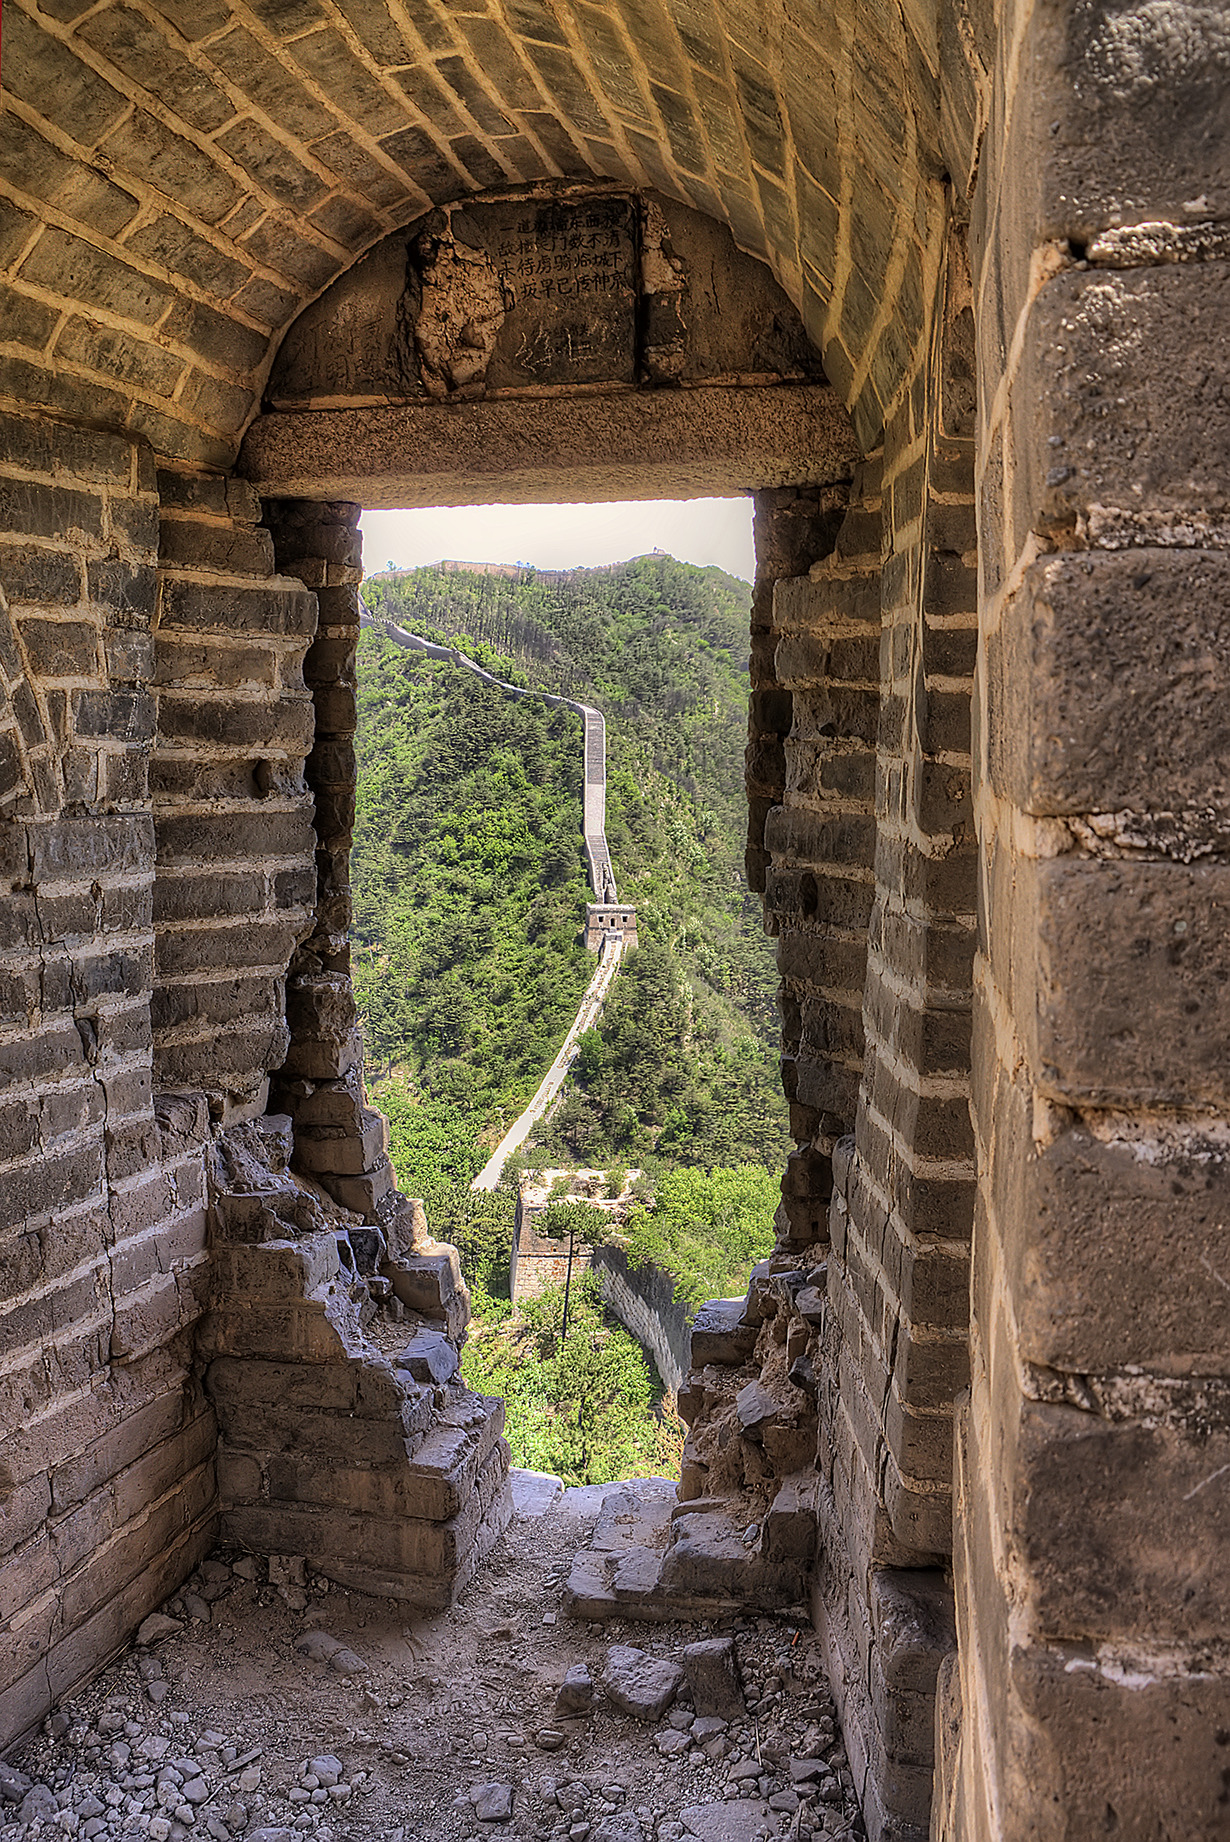 DAY 126 - 18/06/12 The Great Wall of China